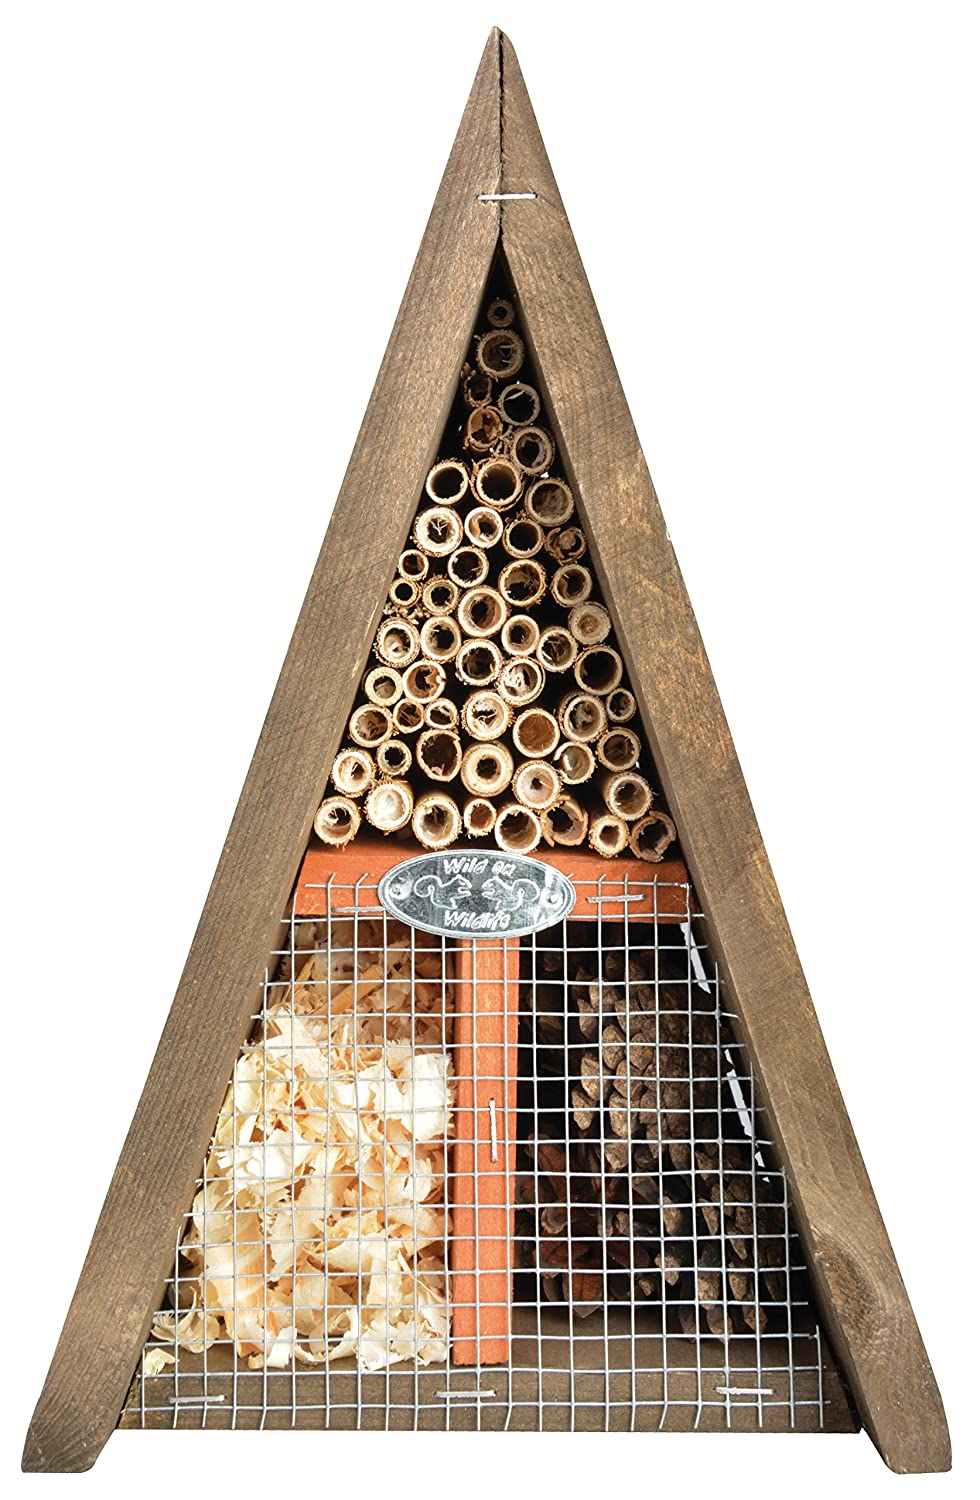 Fallen Fruits Triangle Insect Hotel Esschert Design WA36